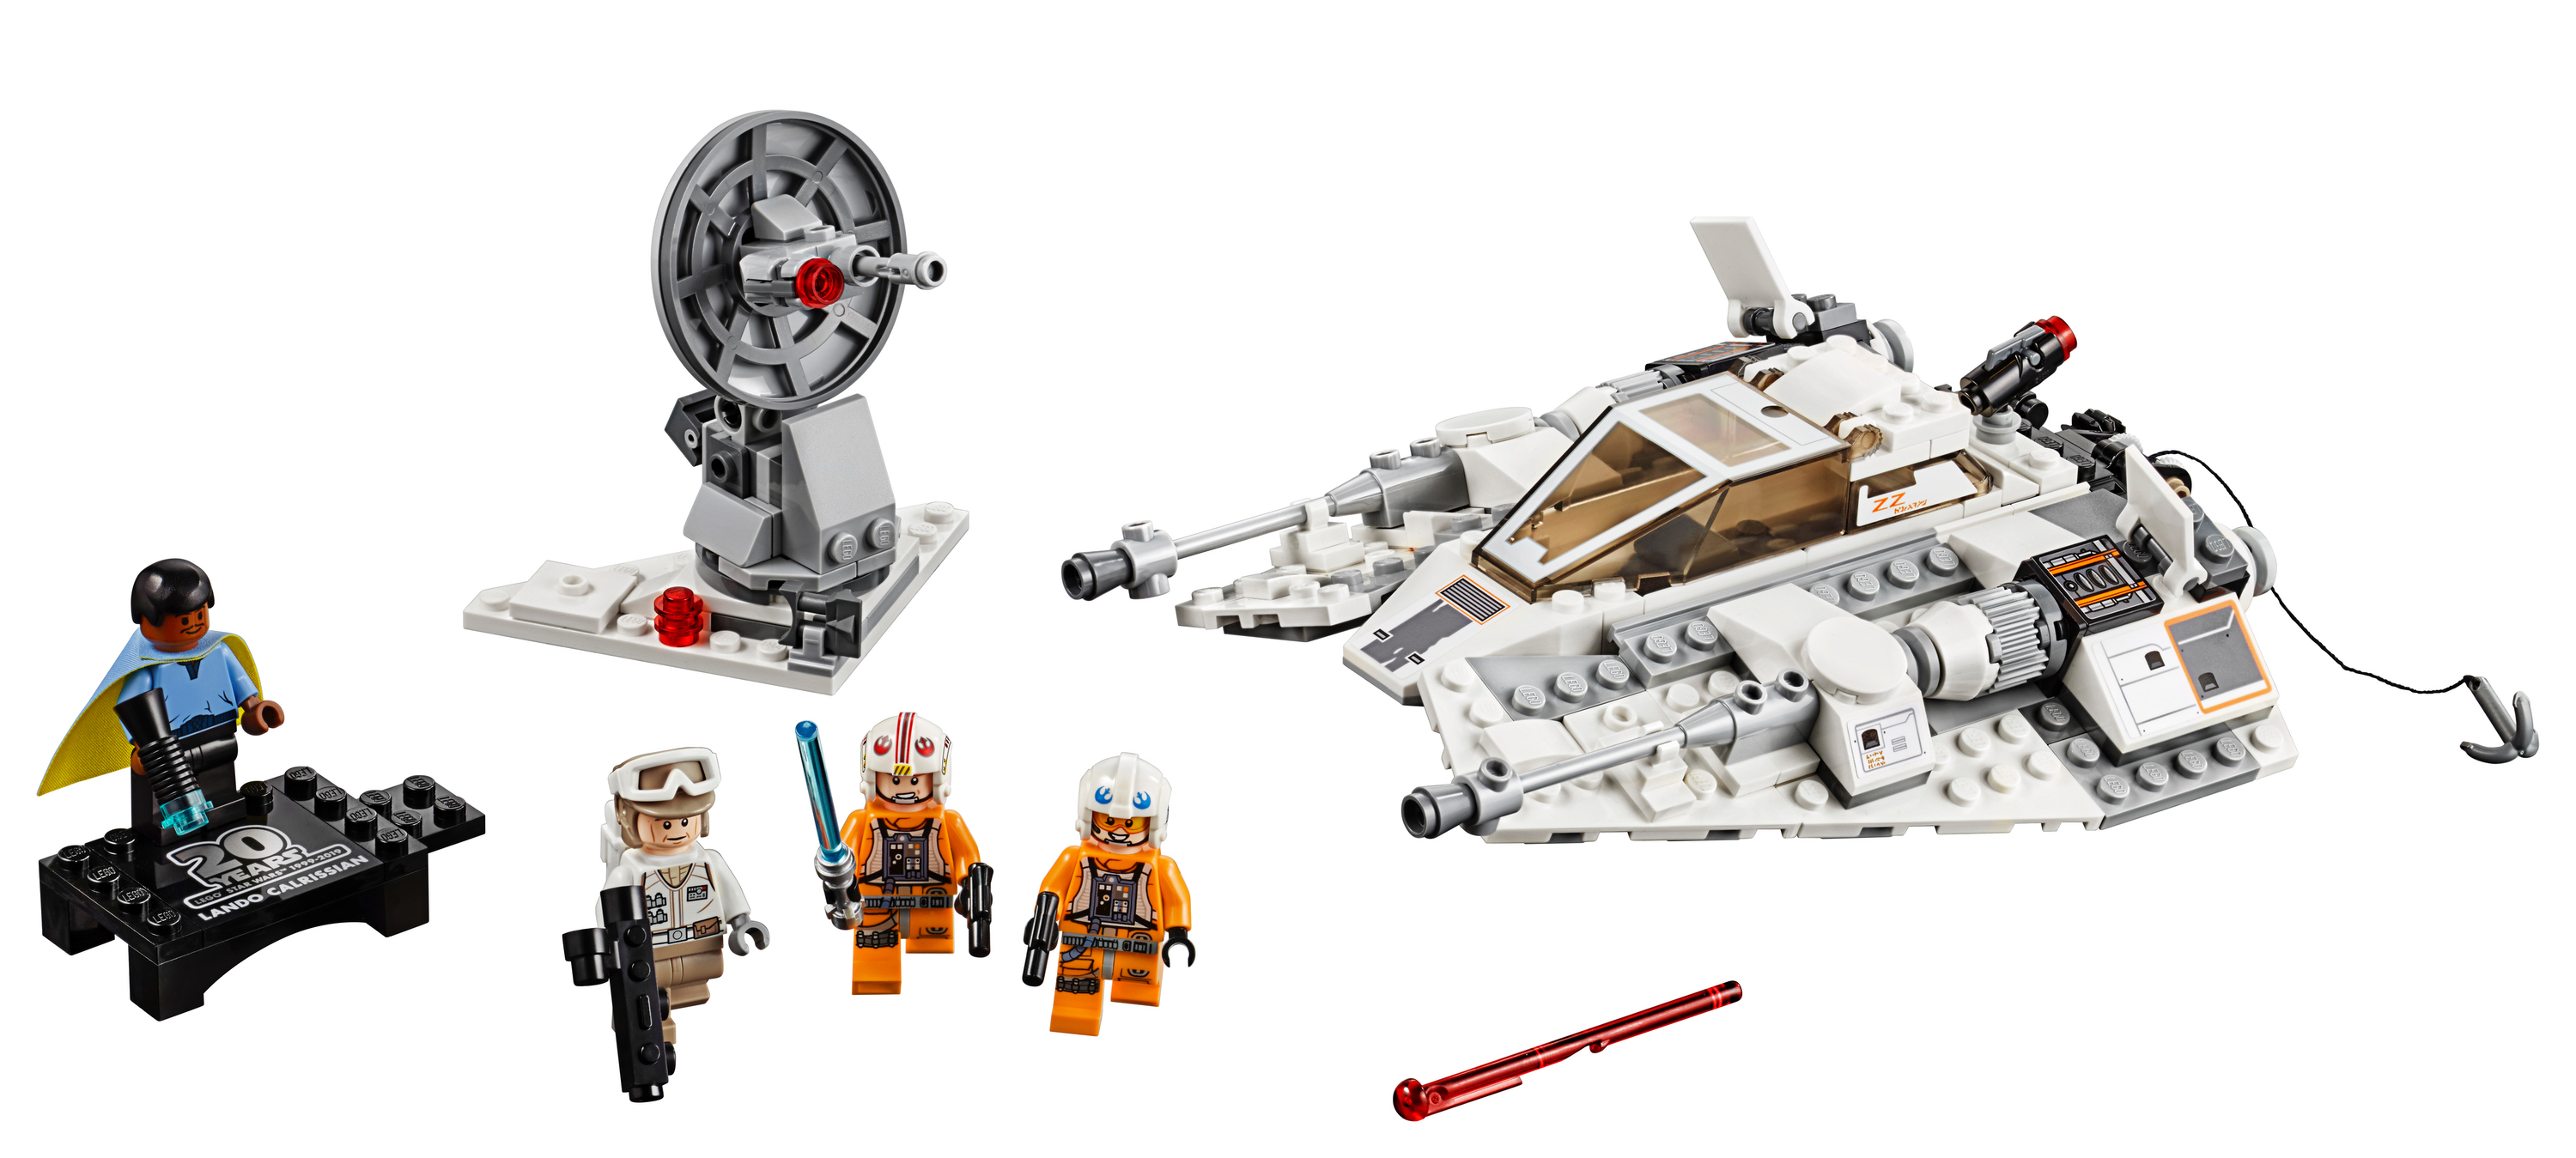 LEGO Star Wars 20th Anniversary Snowspeeder